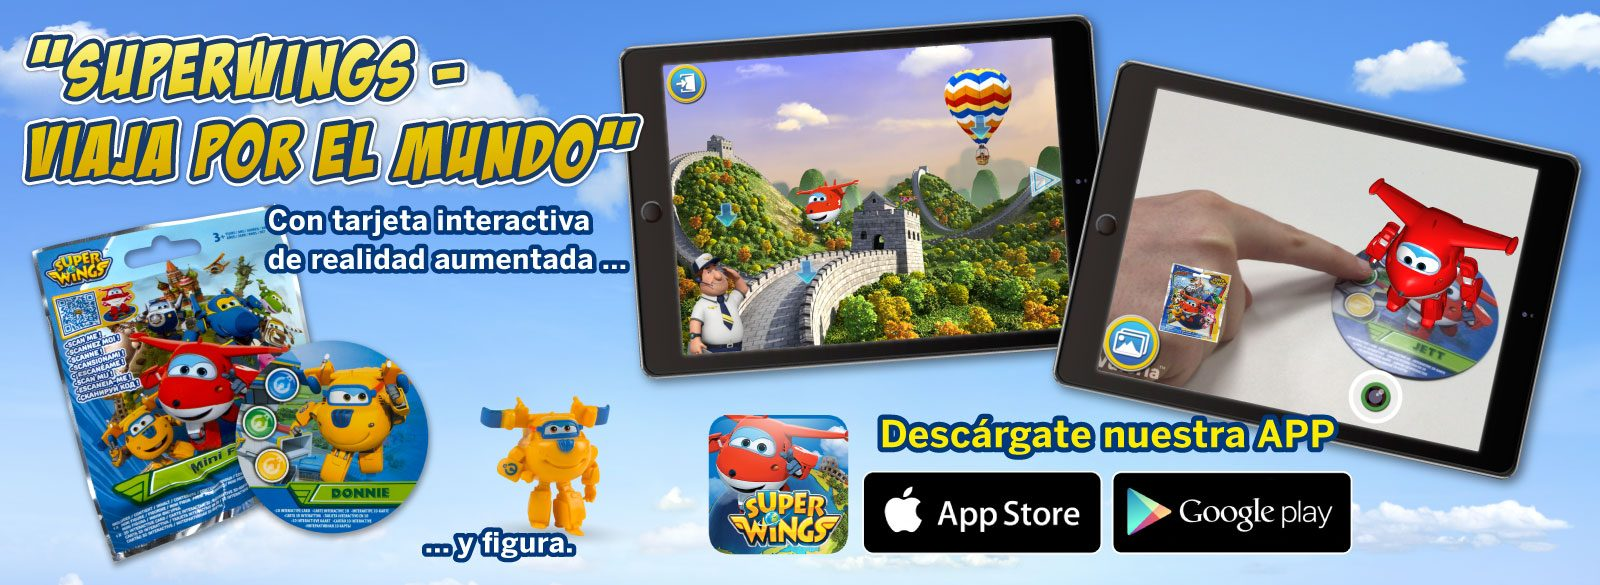 Super Wings APP